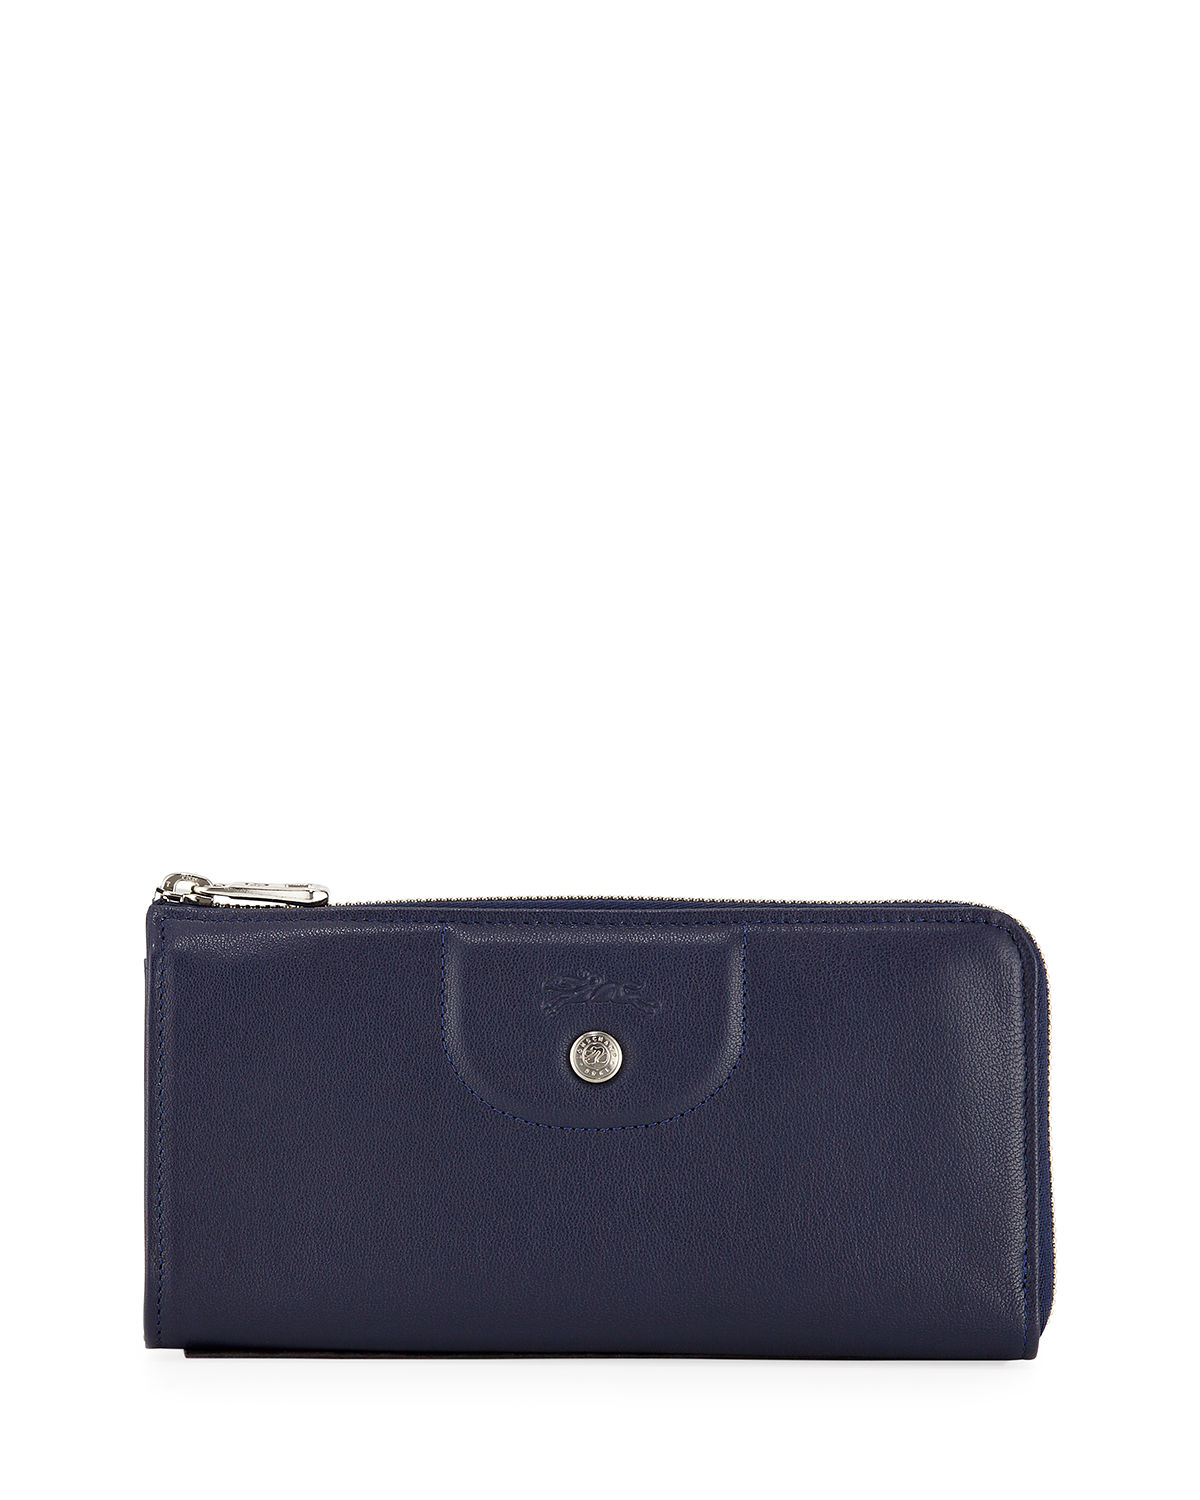 Le Pliage Cuir Leather Zip-Around Wallet